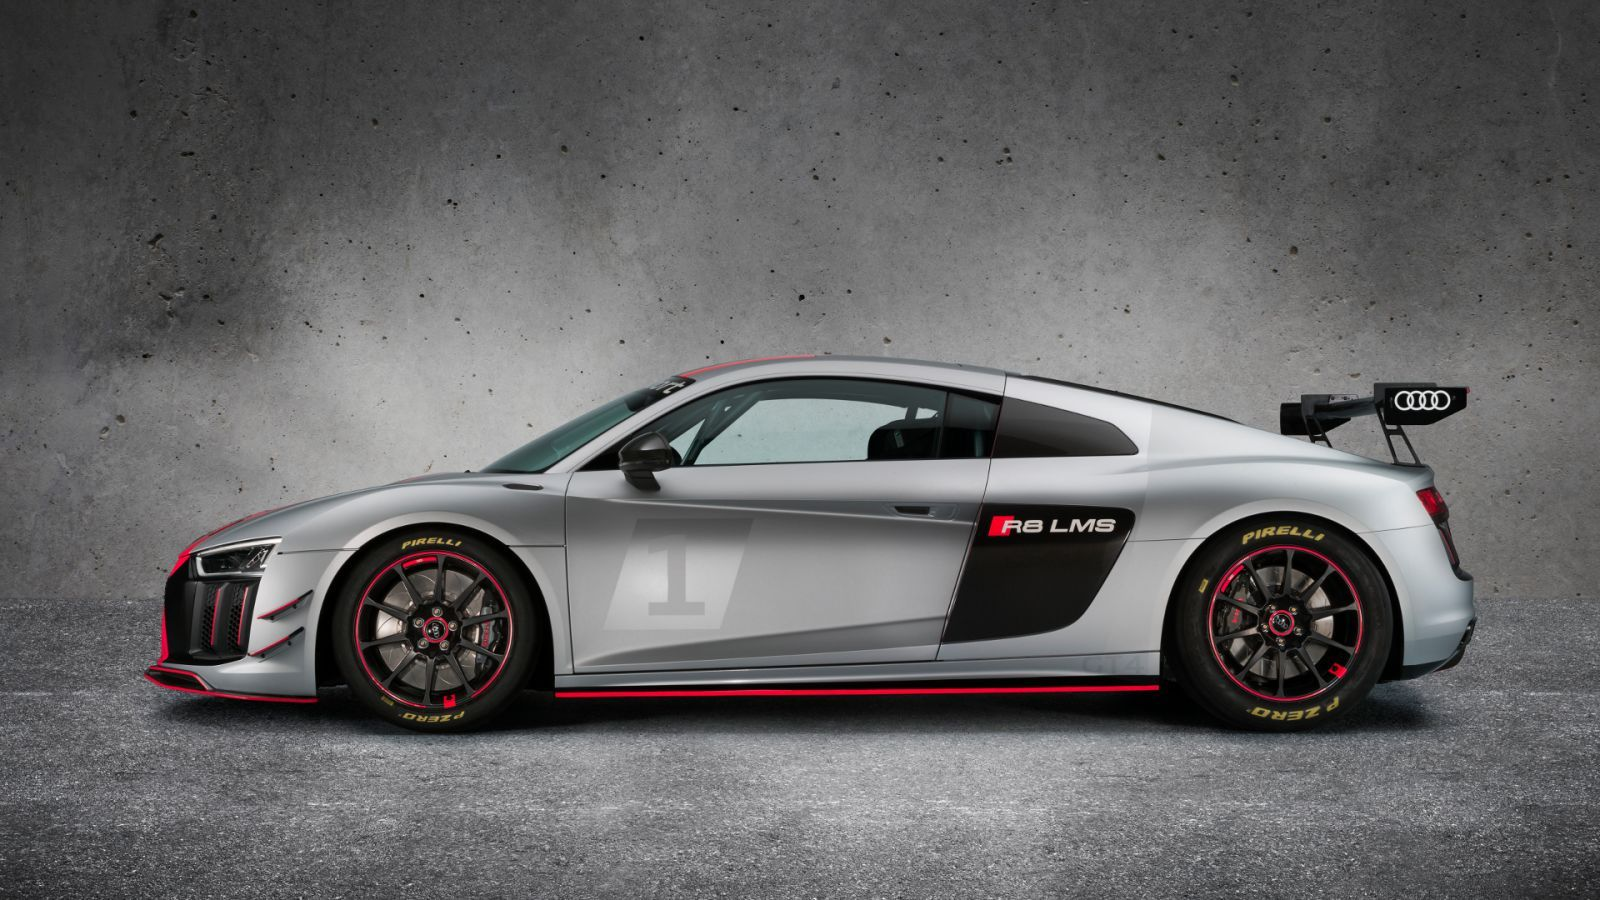 New Audi R8 Lms Gt4 Continues Quest To Dominate Every Series With Some Kind Of R8 Sports Car Photos Sports Car Audi R8